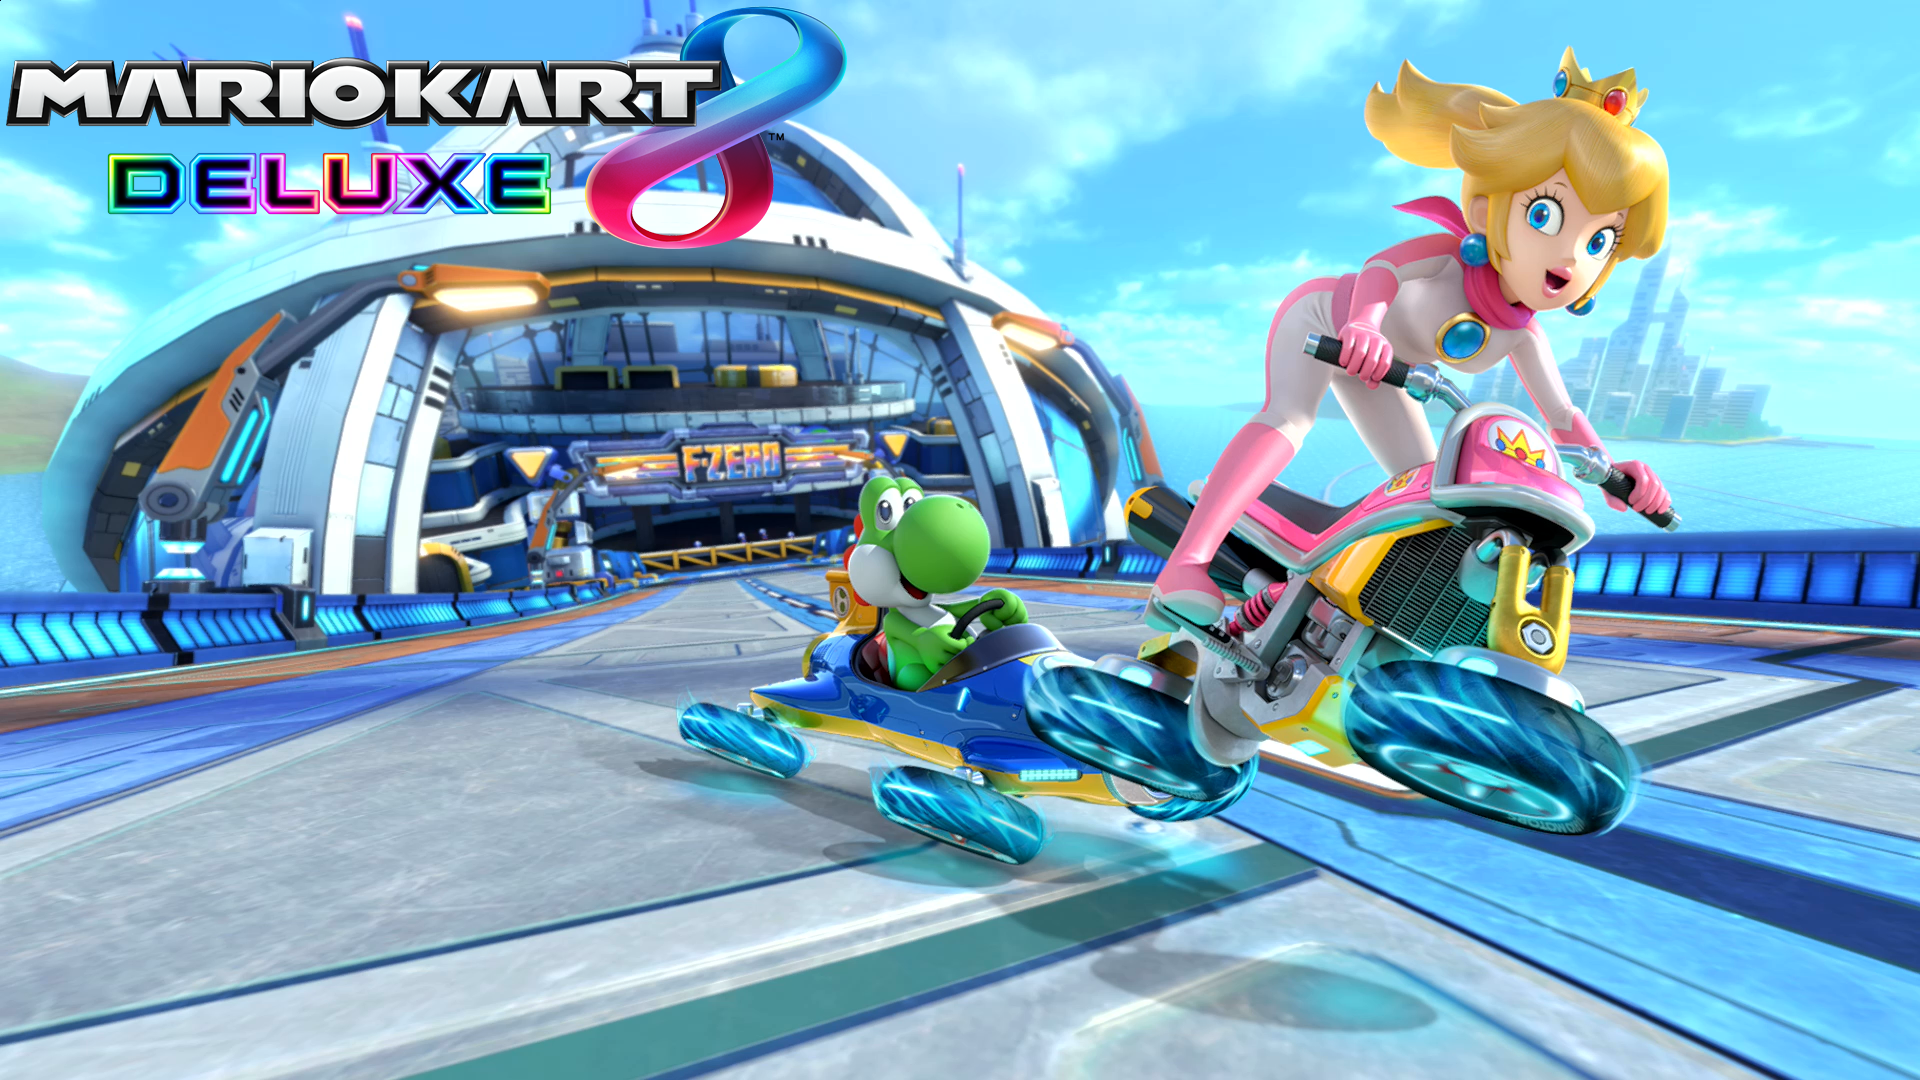 Mario Kart 8 Background: Mario Kart 8 Deluxe Peach & Yoshi Wallpaper HD Wallpaper